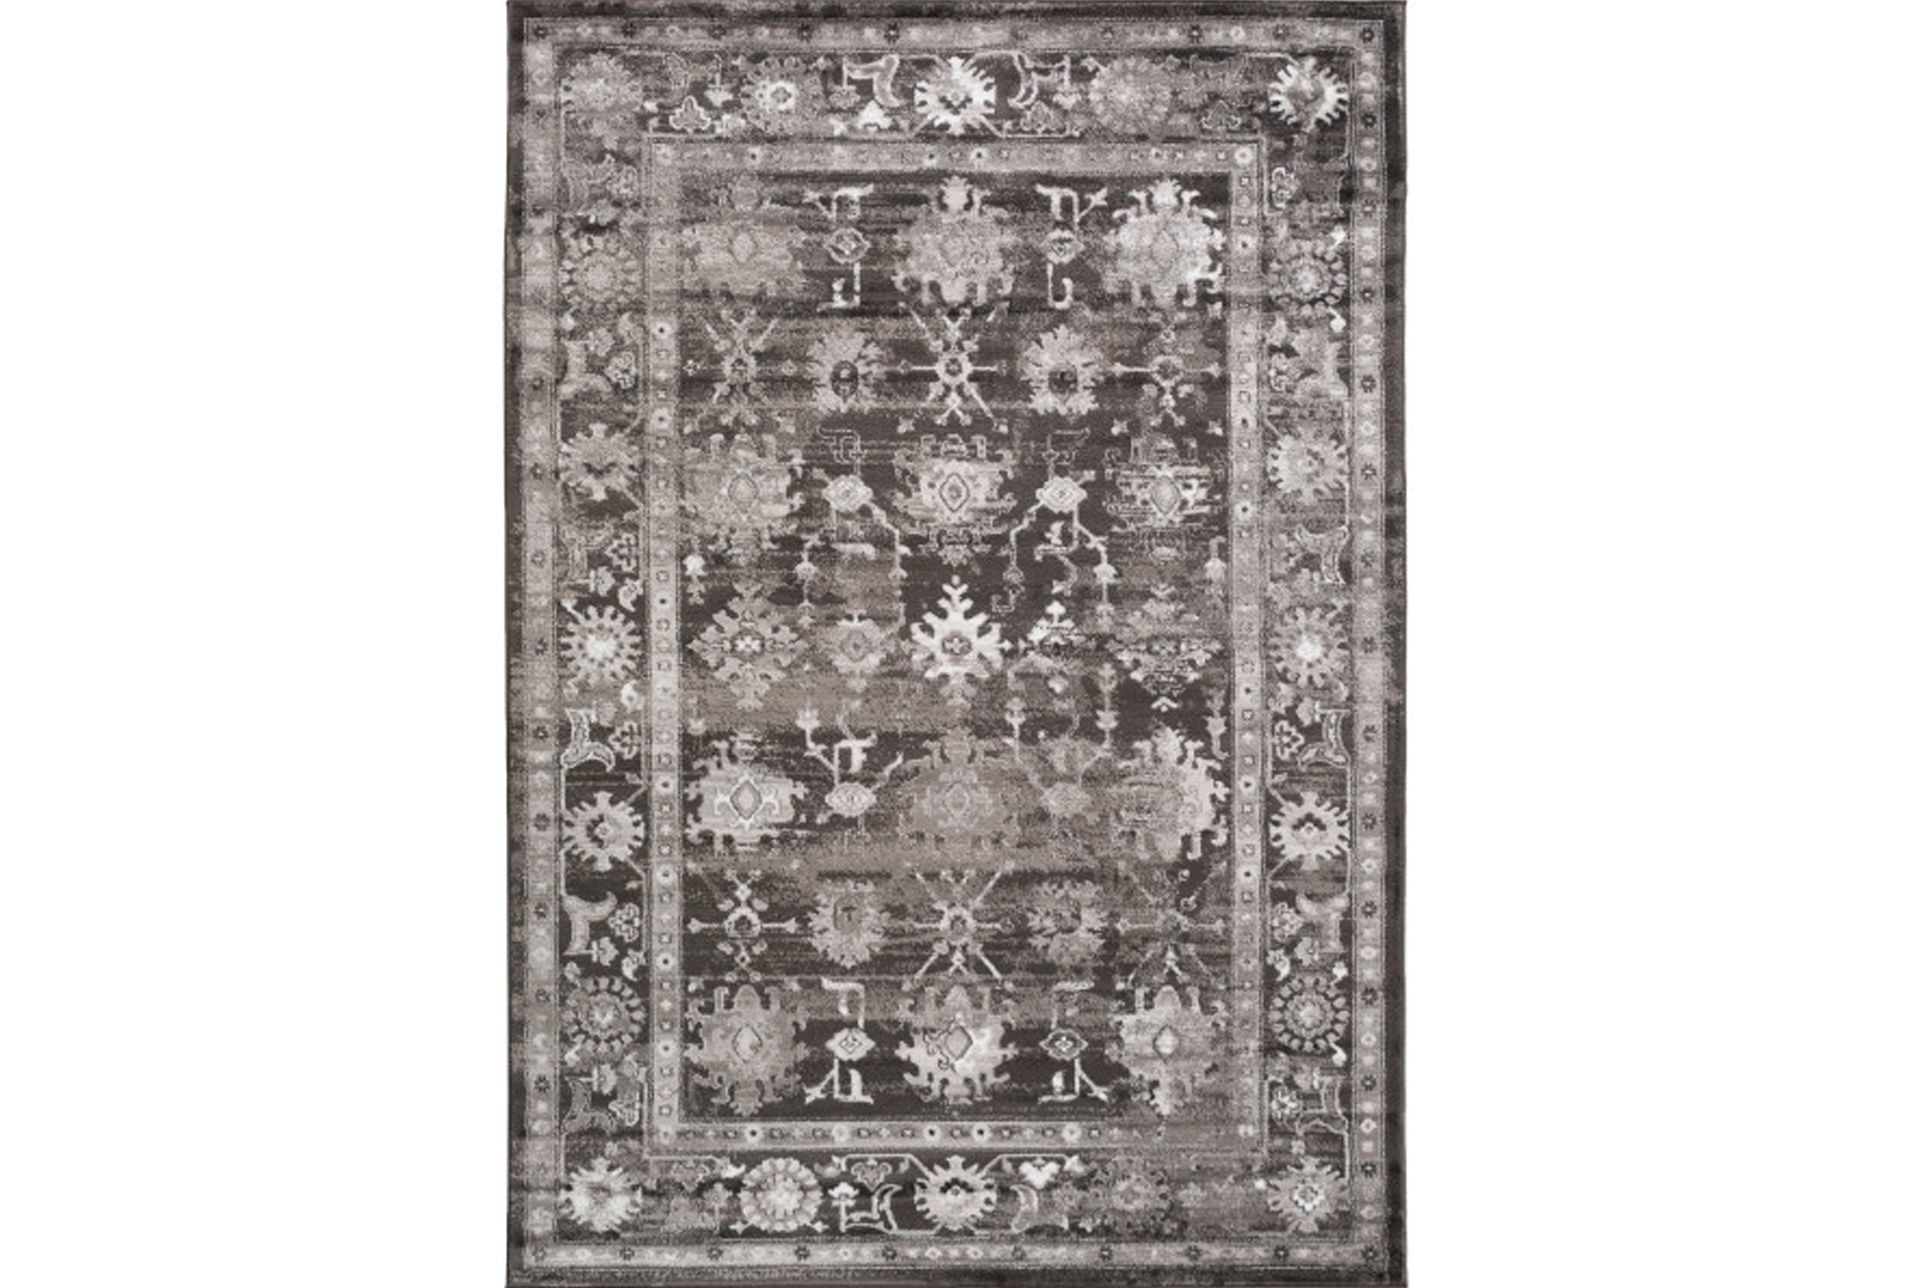 45x62 Rug Aladdin Charcoal Products Rugs Area